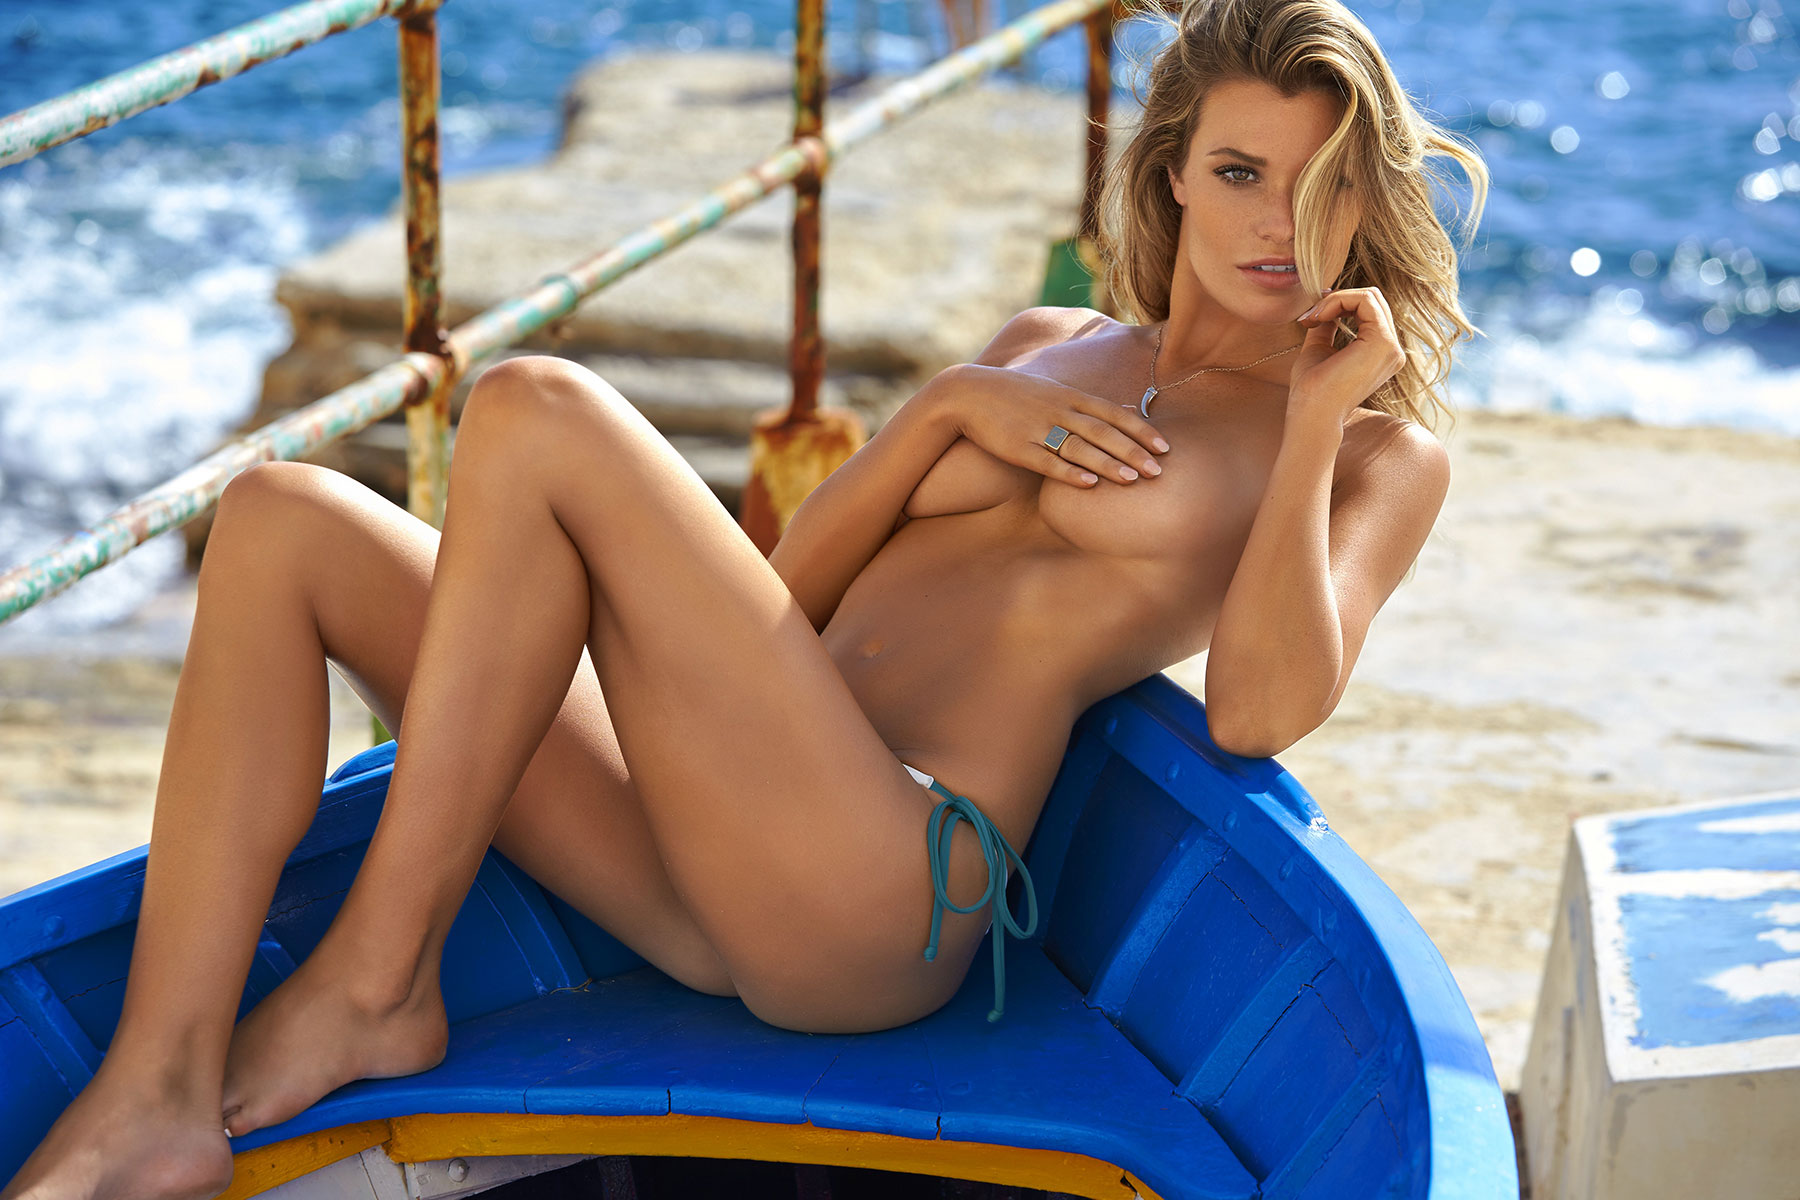 Porn Samantha Hoopes naked (38 foto and video), Pussy, Sideboobs, Twitter, panties 2019